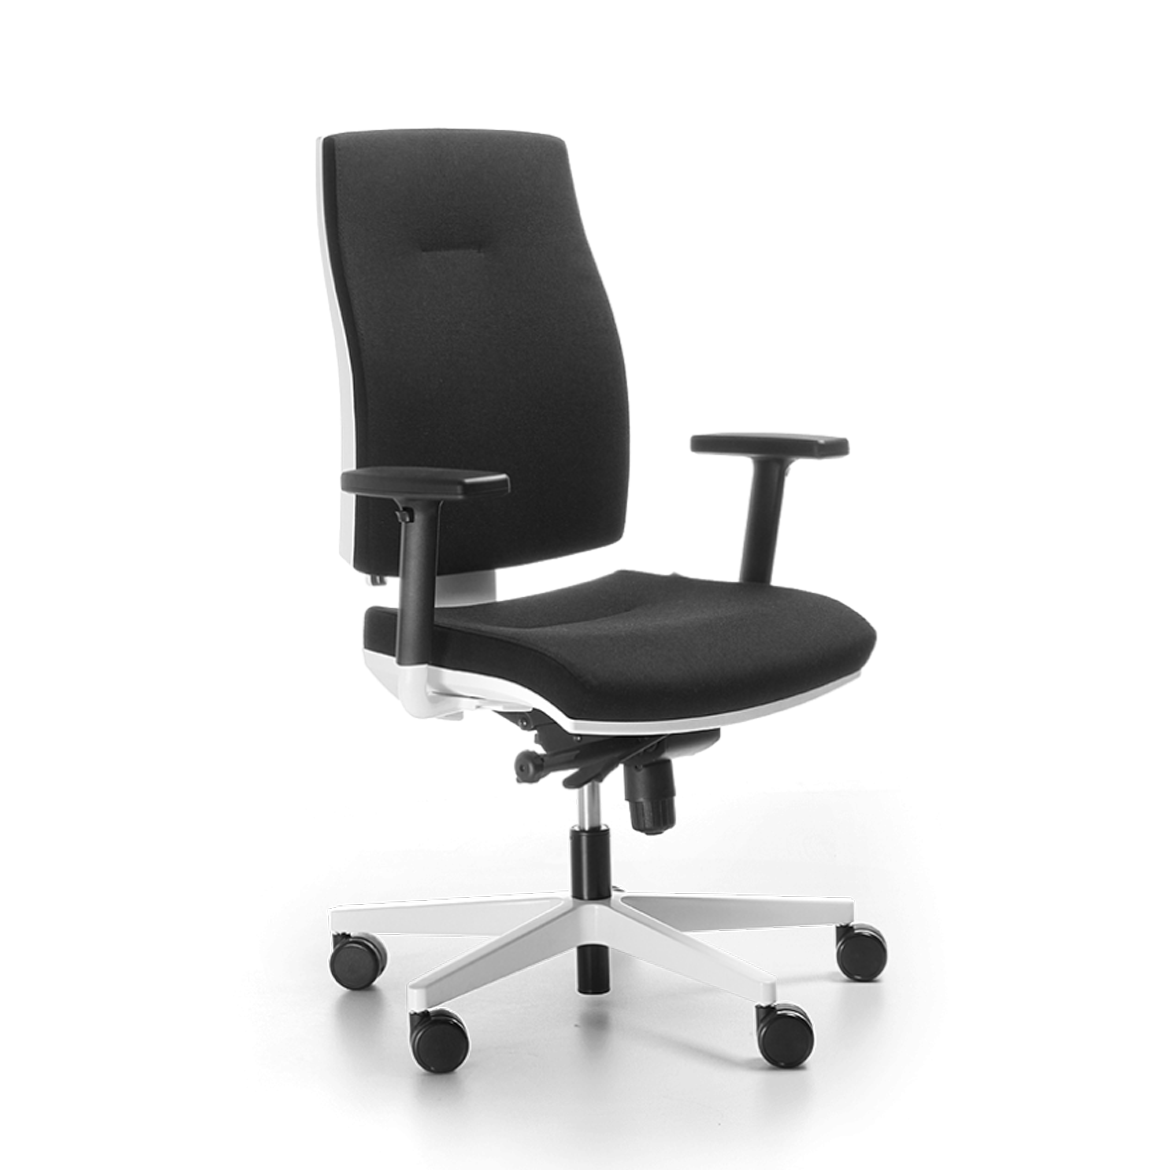 The Corr is a full-size, ergonomic swivel armchair with a characteristic backrest panel ensuring comfort, durability and its characteristic sophisticated look.